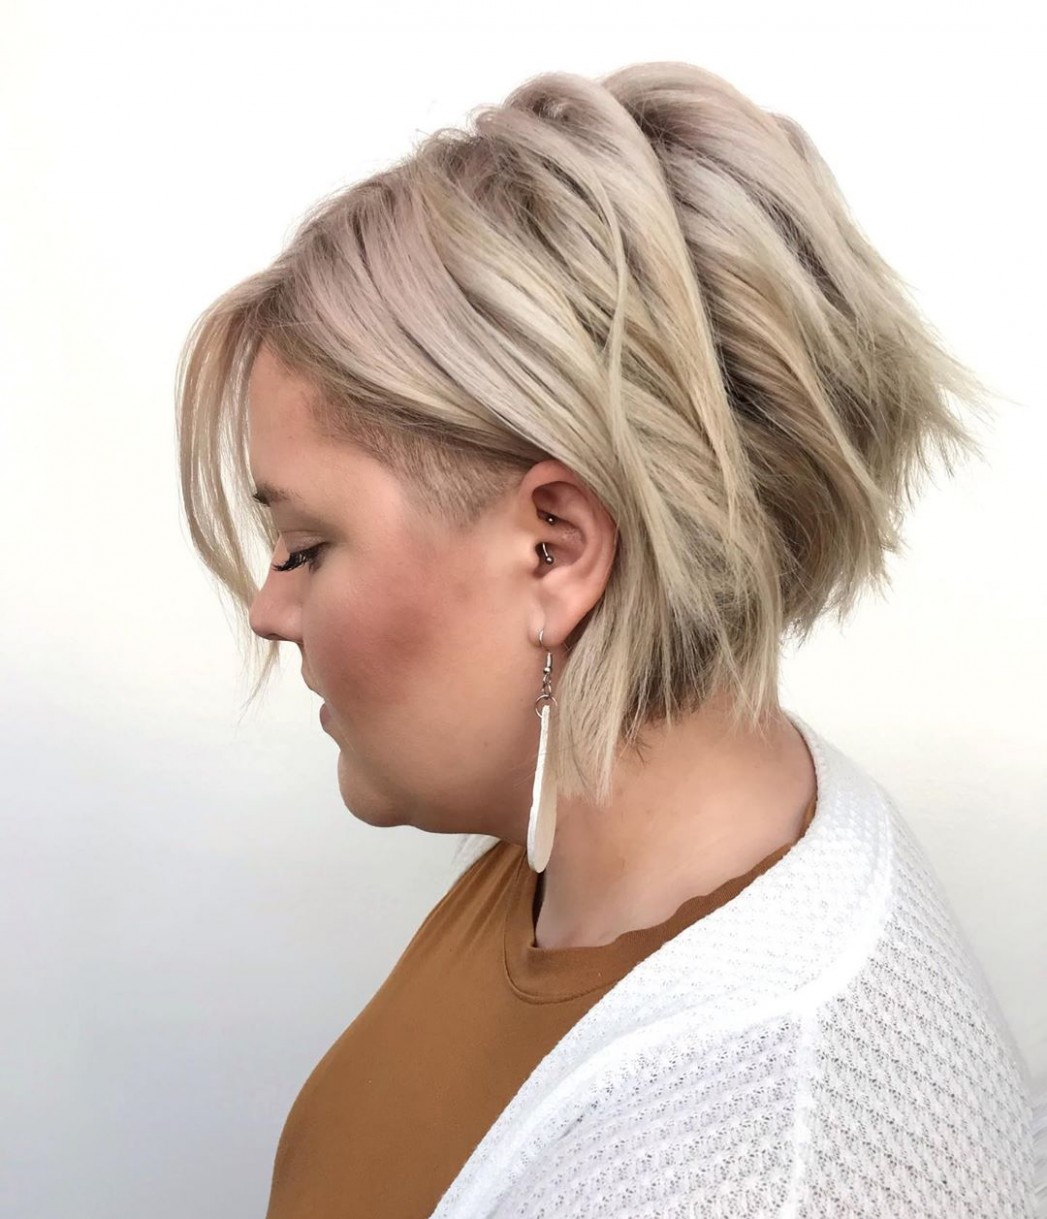 The Most Flattering Short, Medium, and Long Haircuts for Double Chins